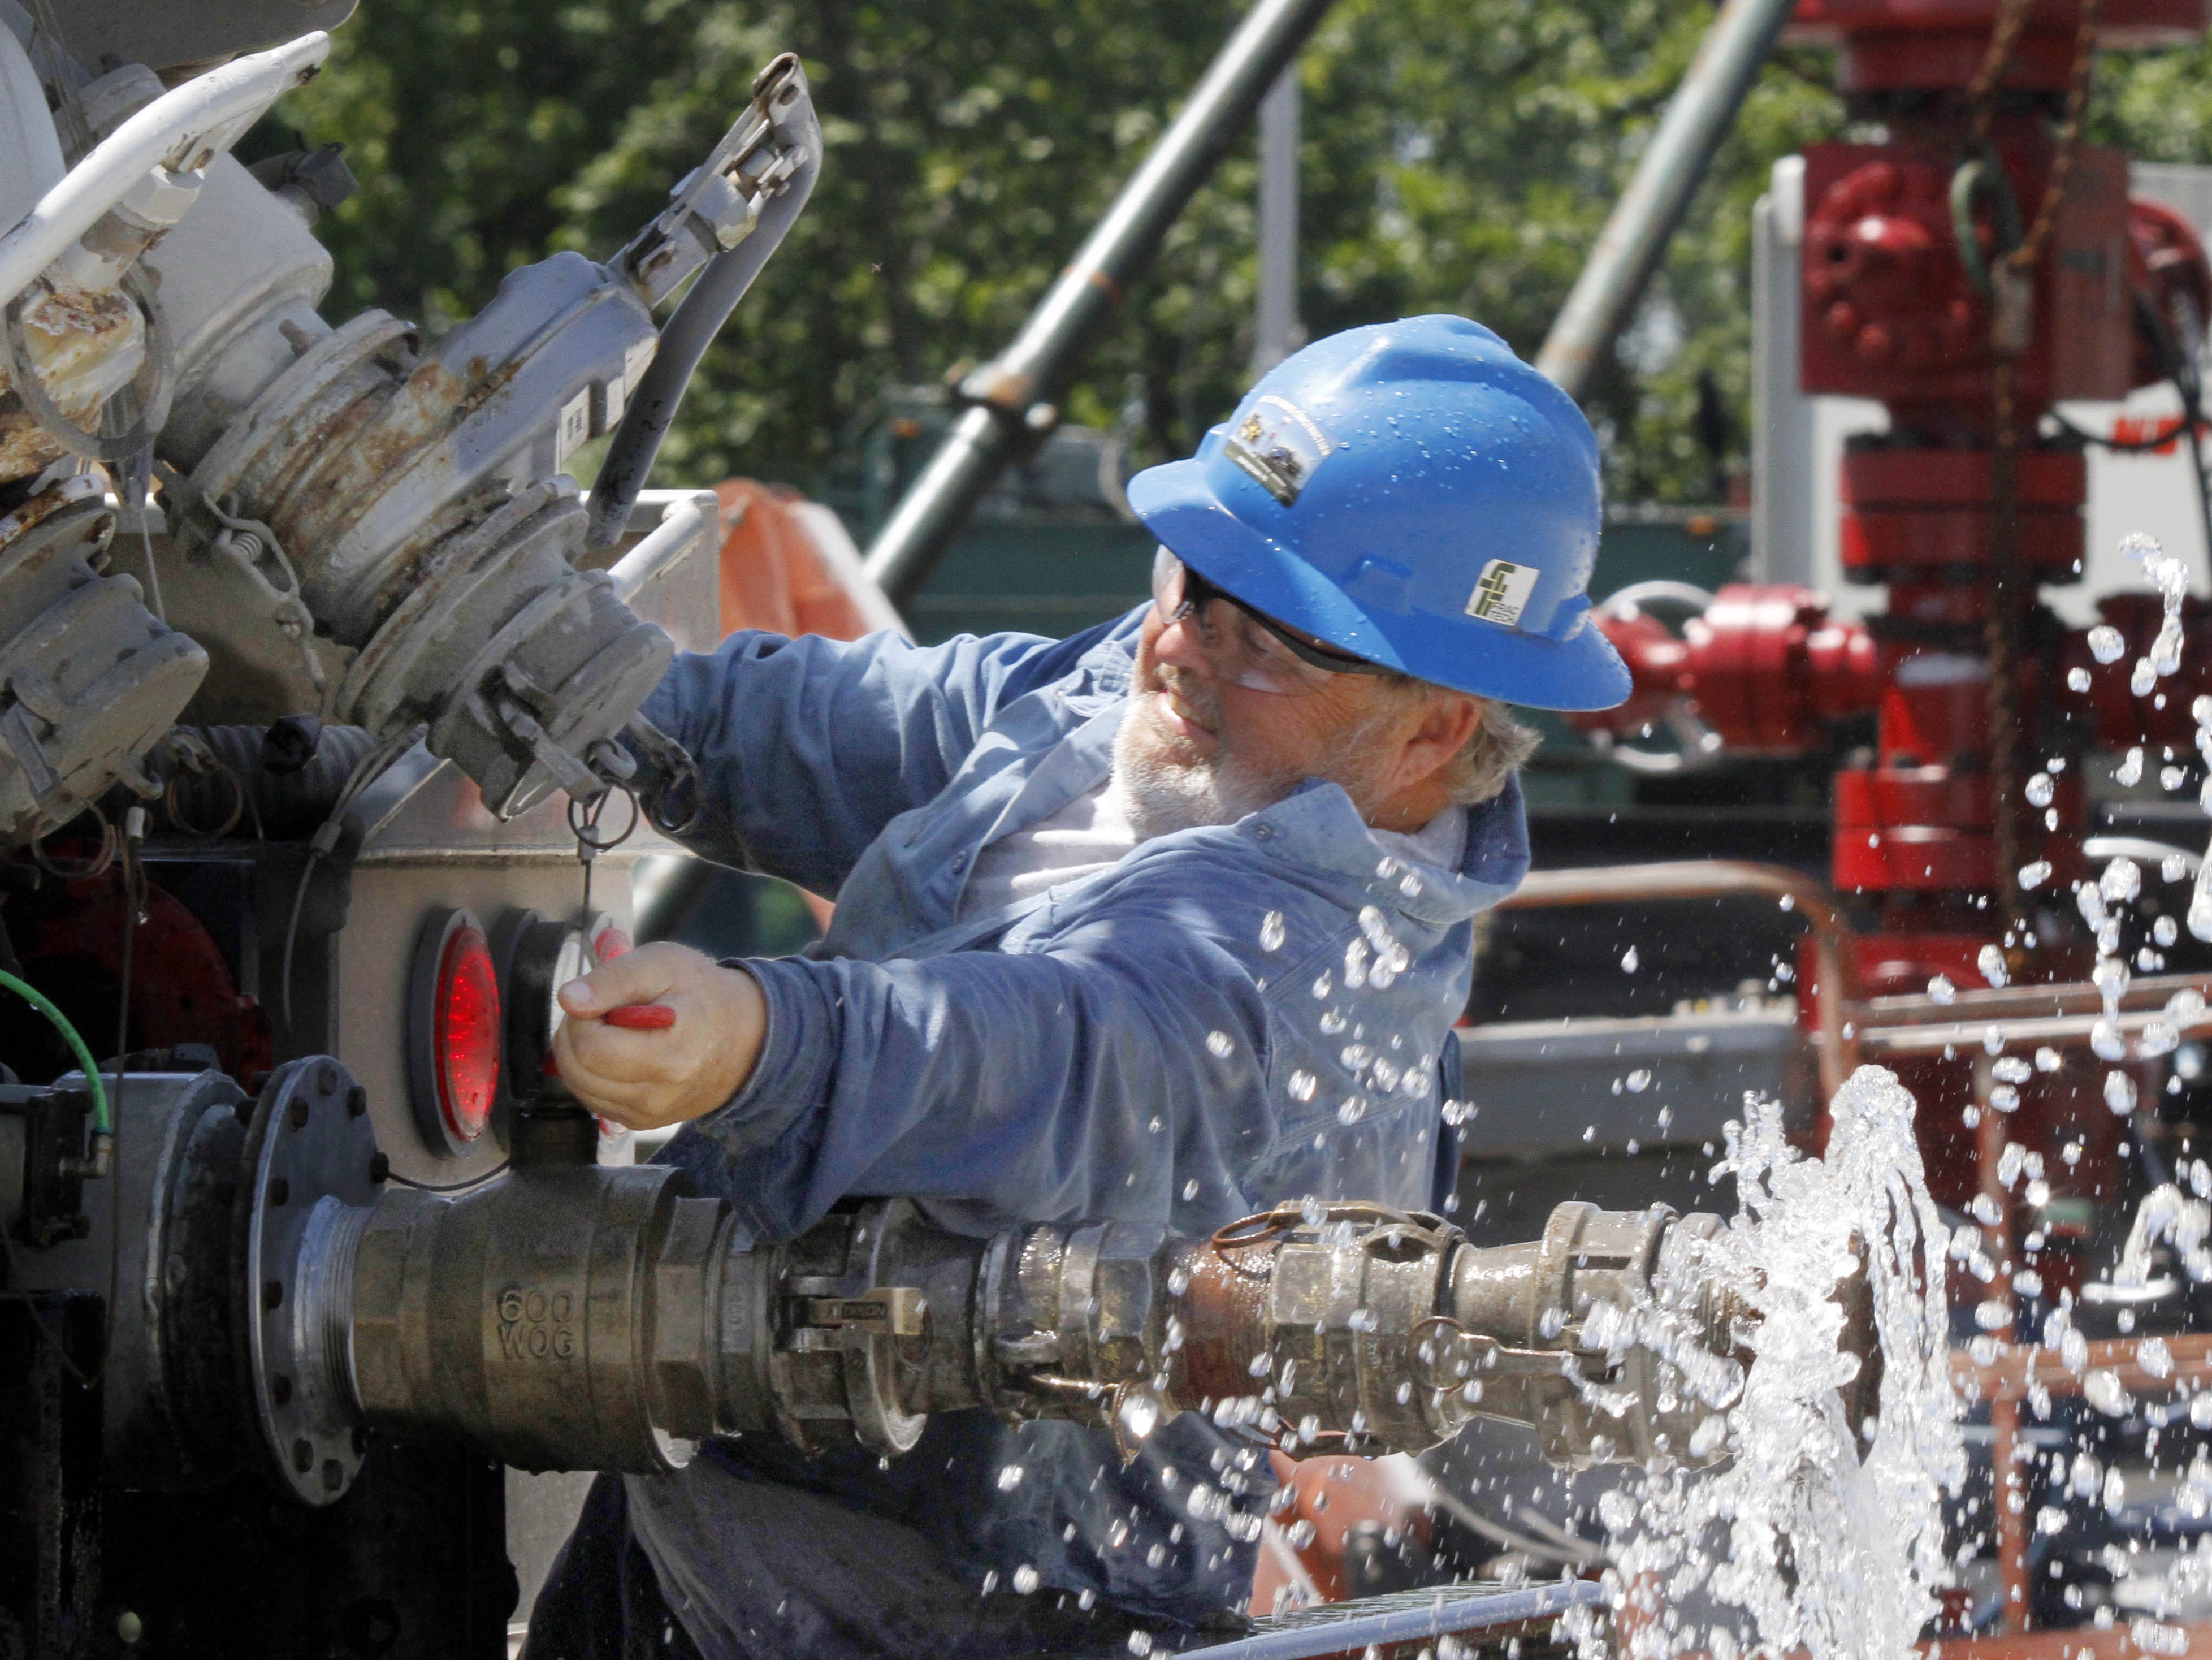 Sand From Fracking Could Pose Lung Disease Risk To Workers